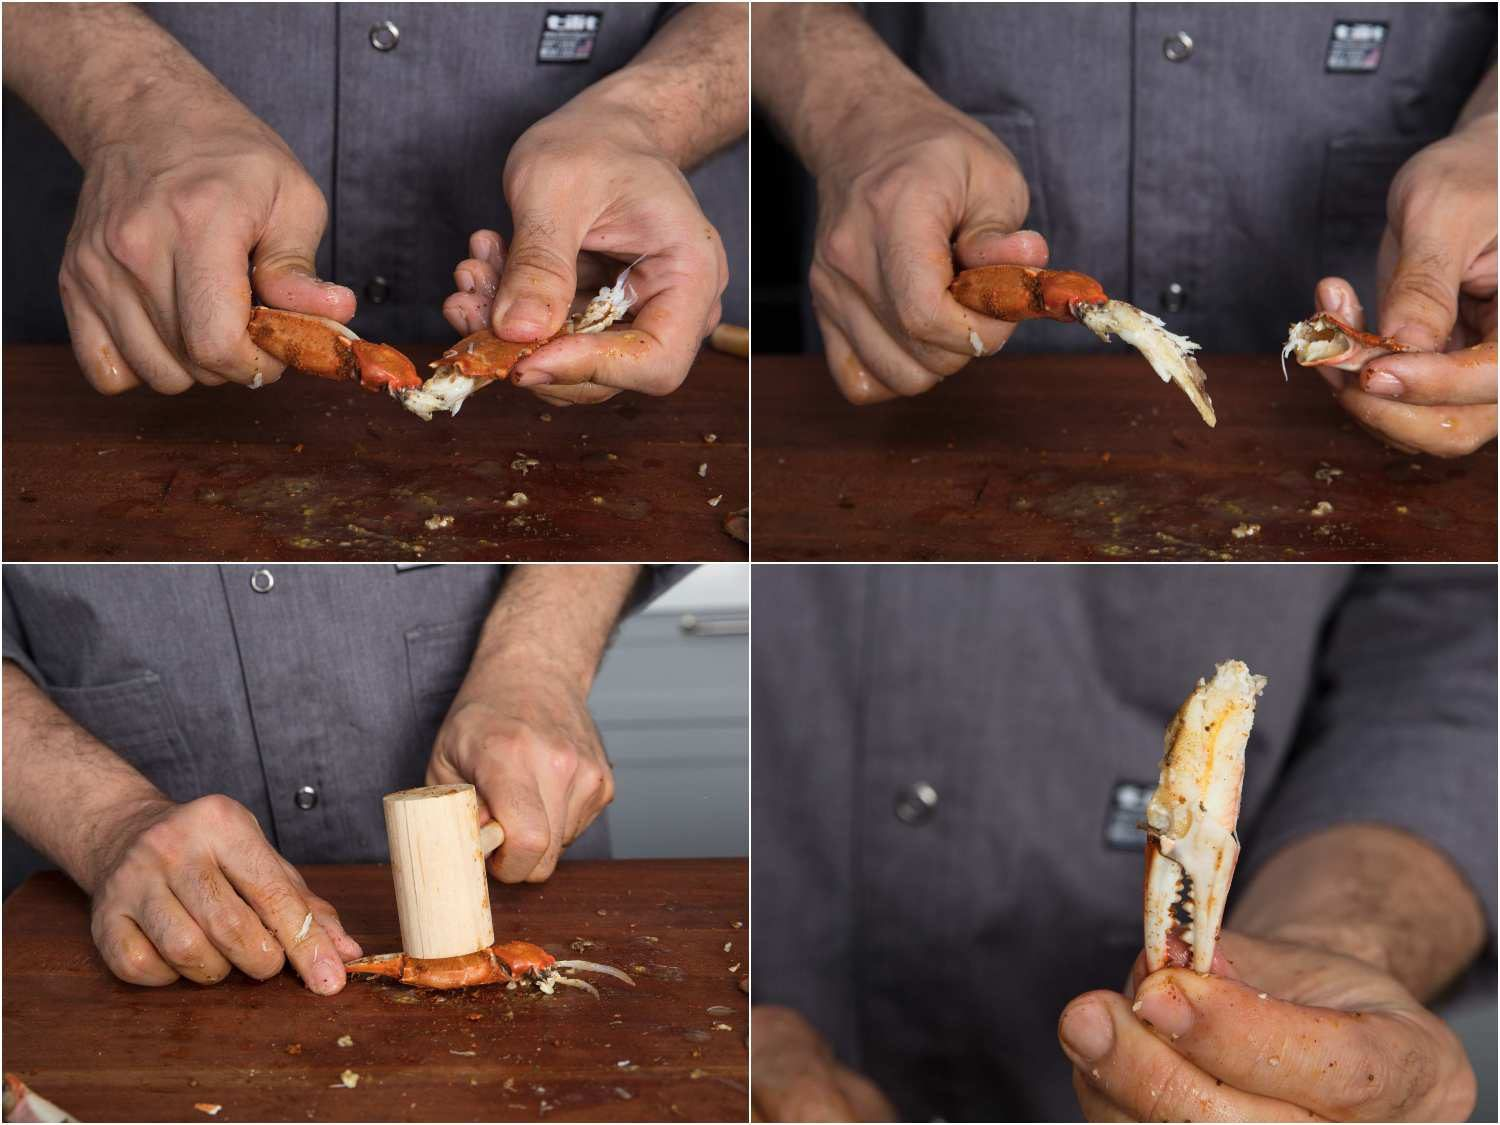 Breaking crab legs in half, cracking with a mallet, the detached crab claw